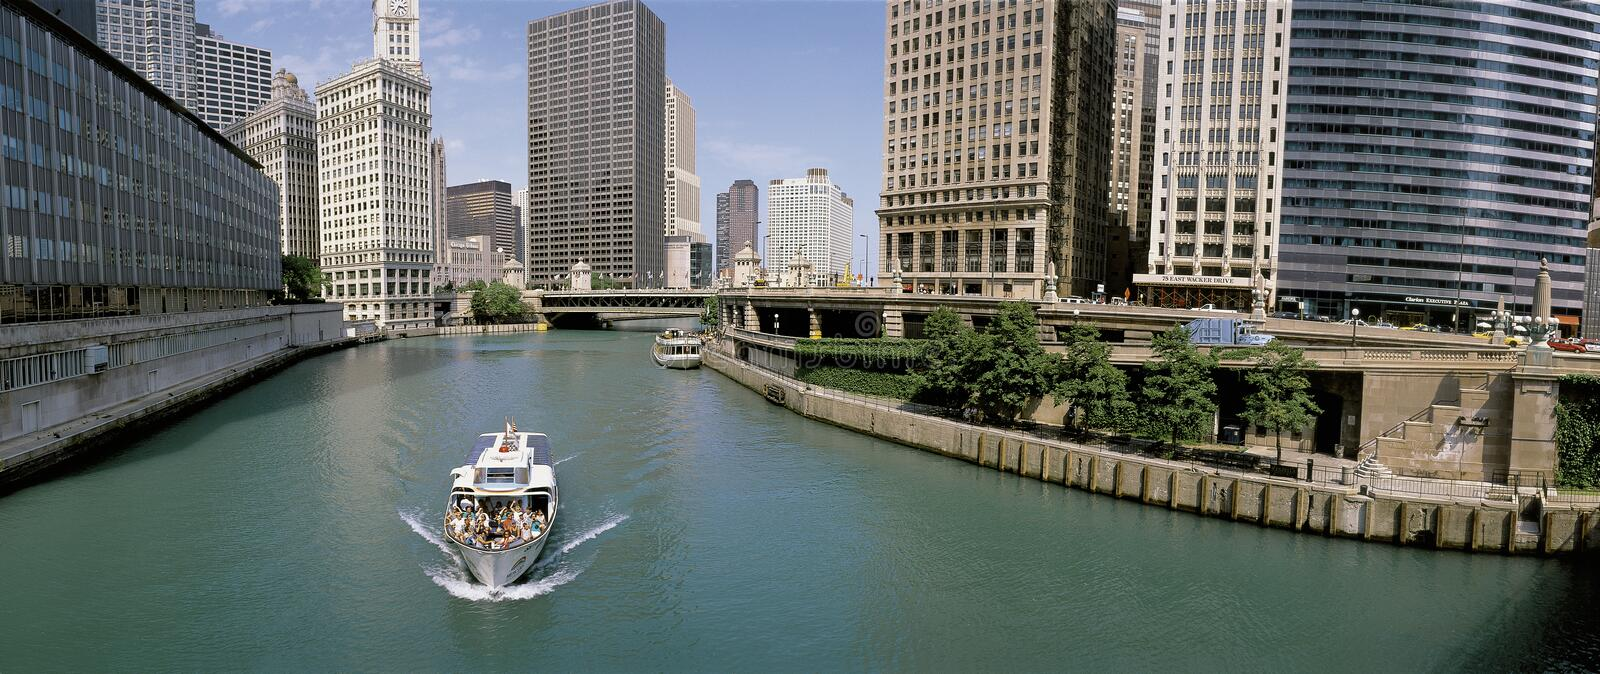 Tour boat on Chicago River royalty free stock photography